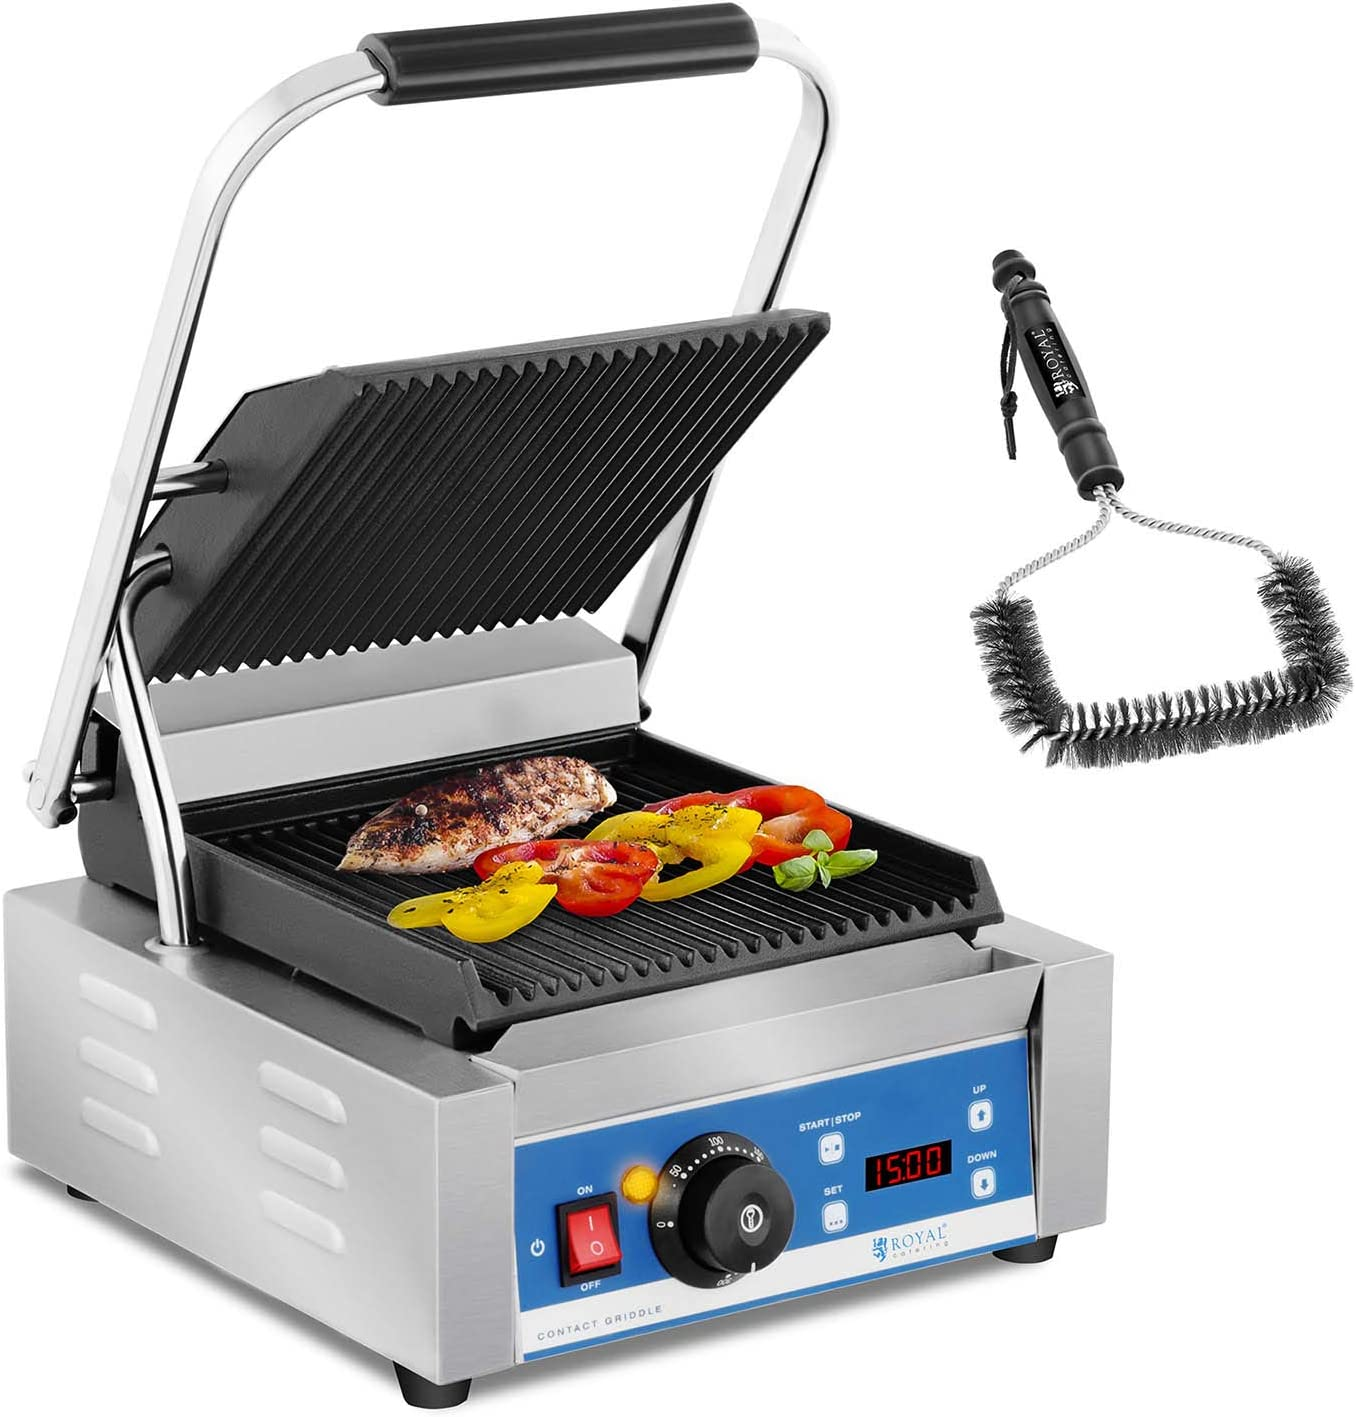 Royal Catering Electric Contact Grill Brush Set Panini Grill Press Ribbed 1800W 15 Min Timer RCKG-2200-GY-SET Enamelled Cast Iron Grill Plate, Stainless Steel Housing, 55-300 /°C